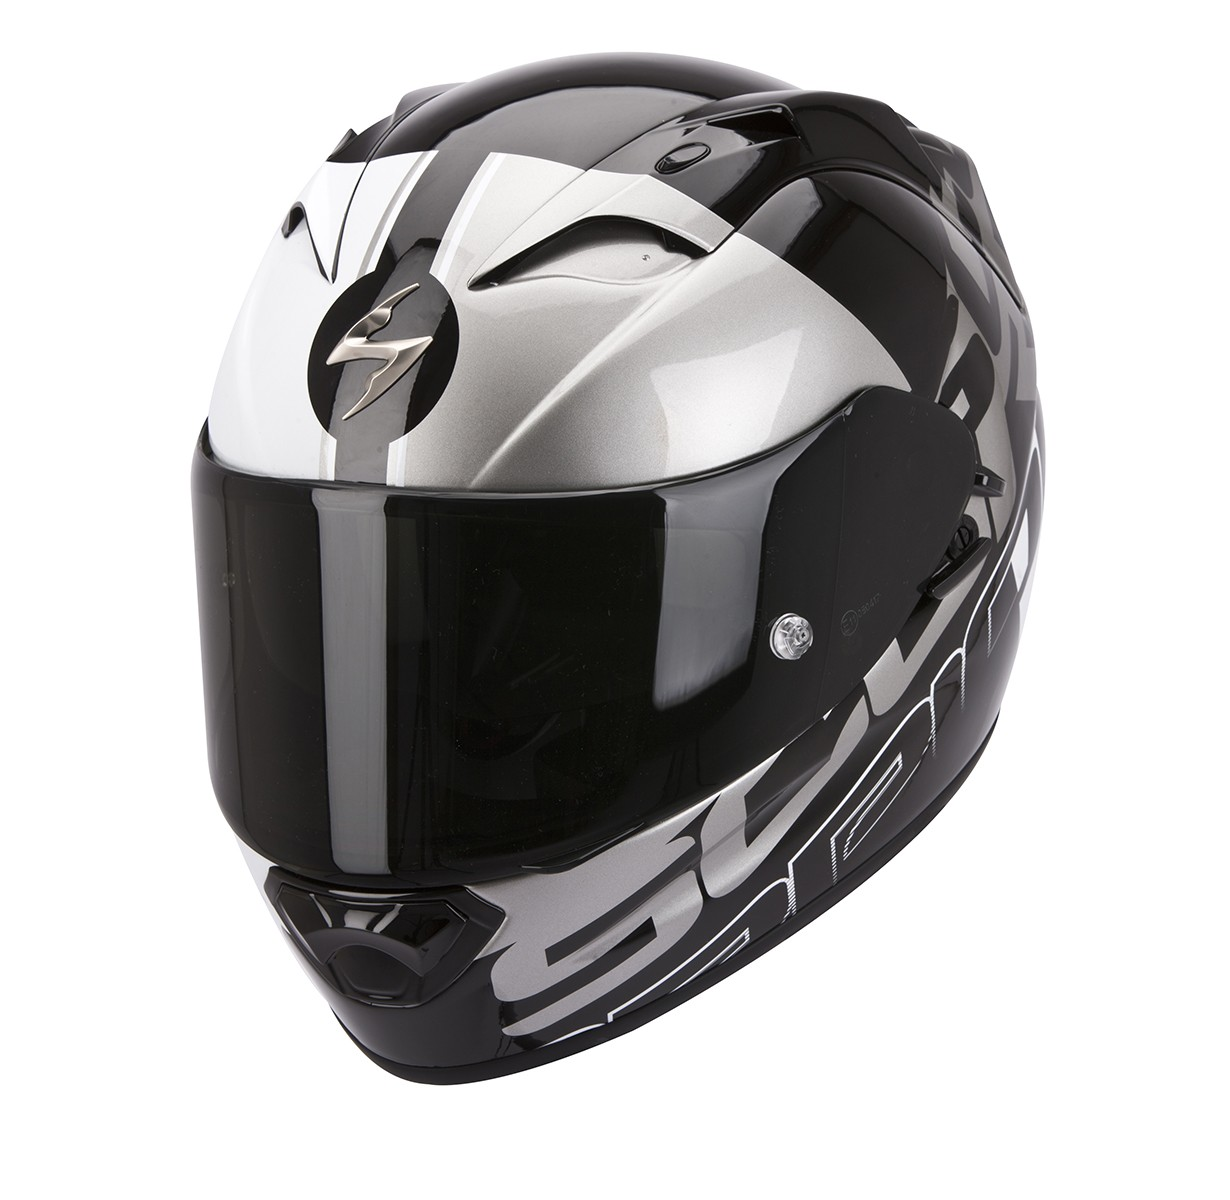 Scorpion EXO-1200 Air Helm Quarterback Black/White/Silver